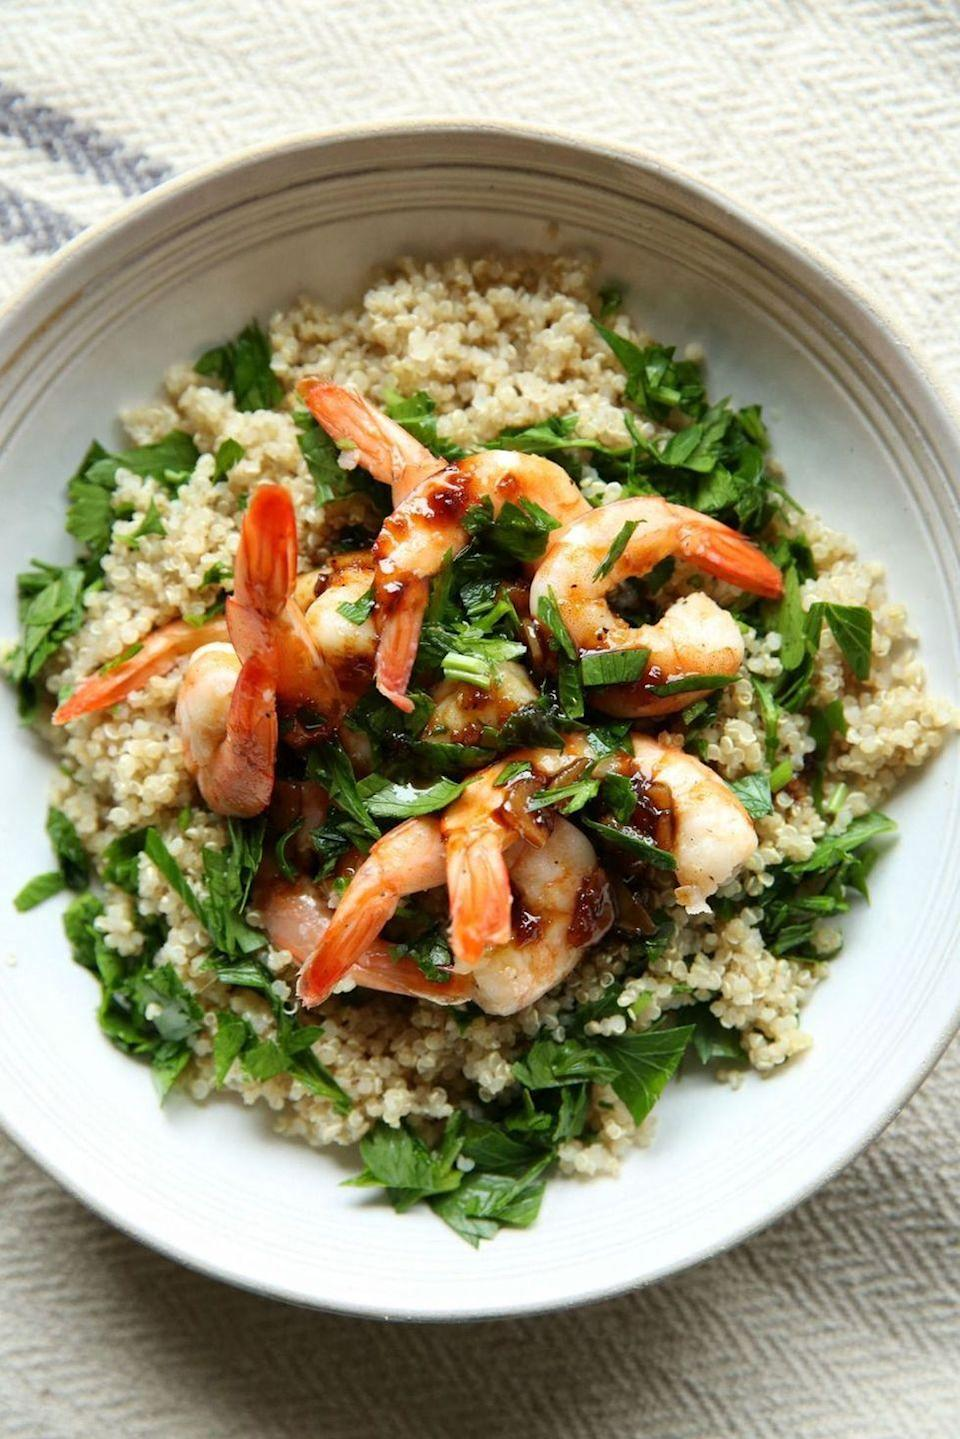 """<p>Don't call these guys shrimpy—they're big on flavor.<br><br>Get the recipe from <a href=""""https://www.delish.com/cooking/recipe-ideas/recipes/a47574/balsamic-glazed-shrimp-with-quinoa-recipe/"""" rel=""""nofollow noopener"""" target=""""_blank"""" data-ylk=""""slk:Delish"""" class=""""link rapid-noclick-resp"""">Delish</a>.</p>"""